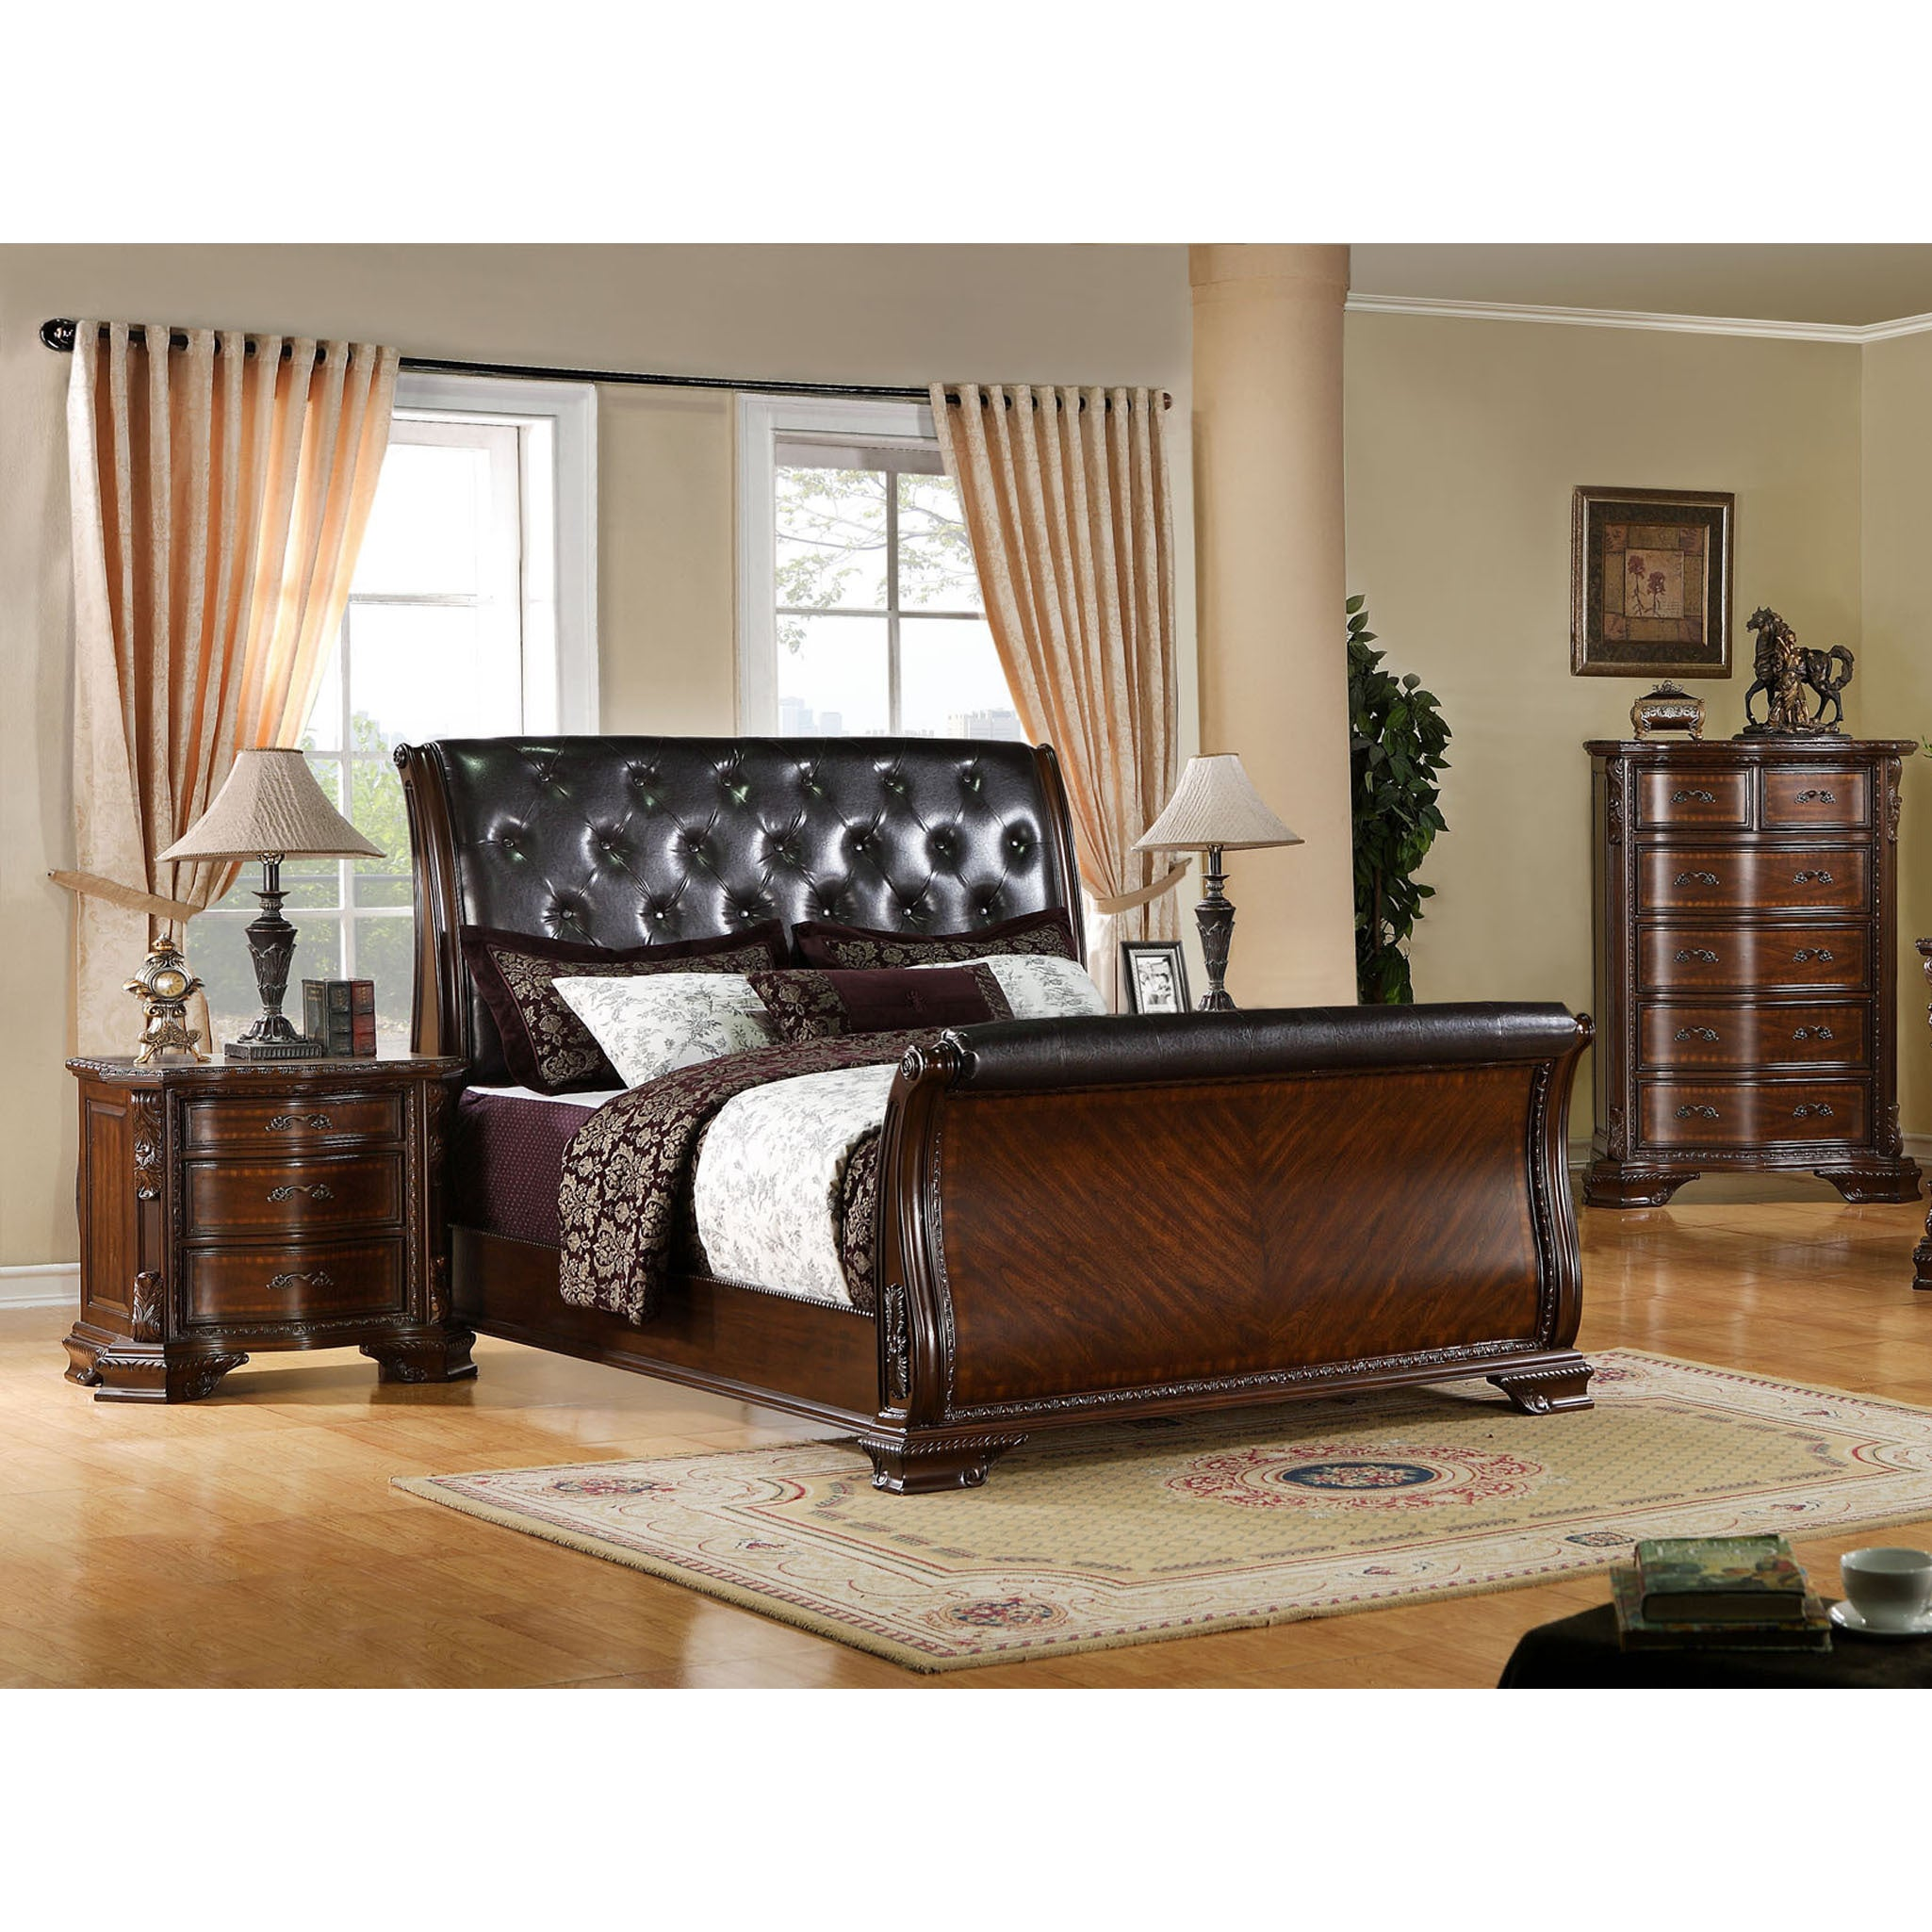 Furniture Of America Luxury Brown Cherry Leatherette Baroque Style Sleigh Bed Free Shipping Today 9216408